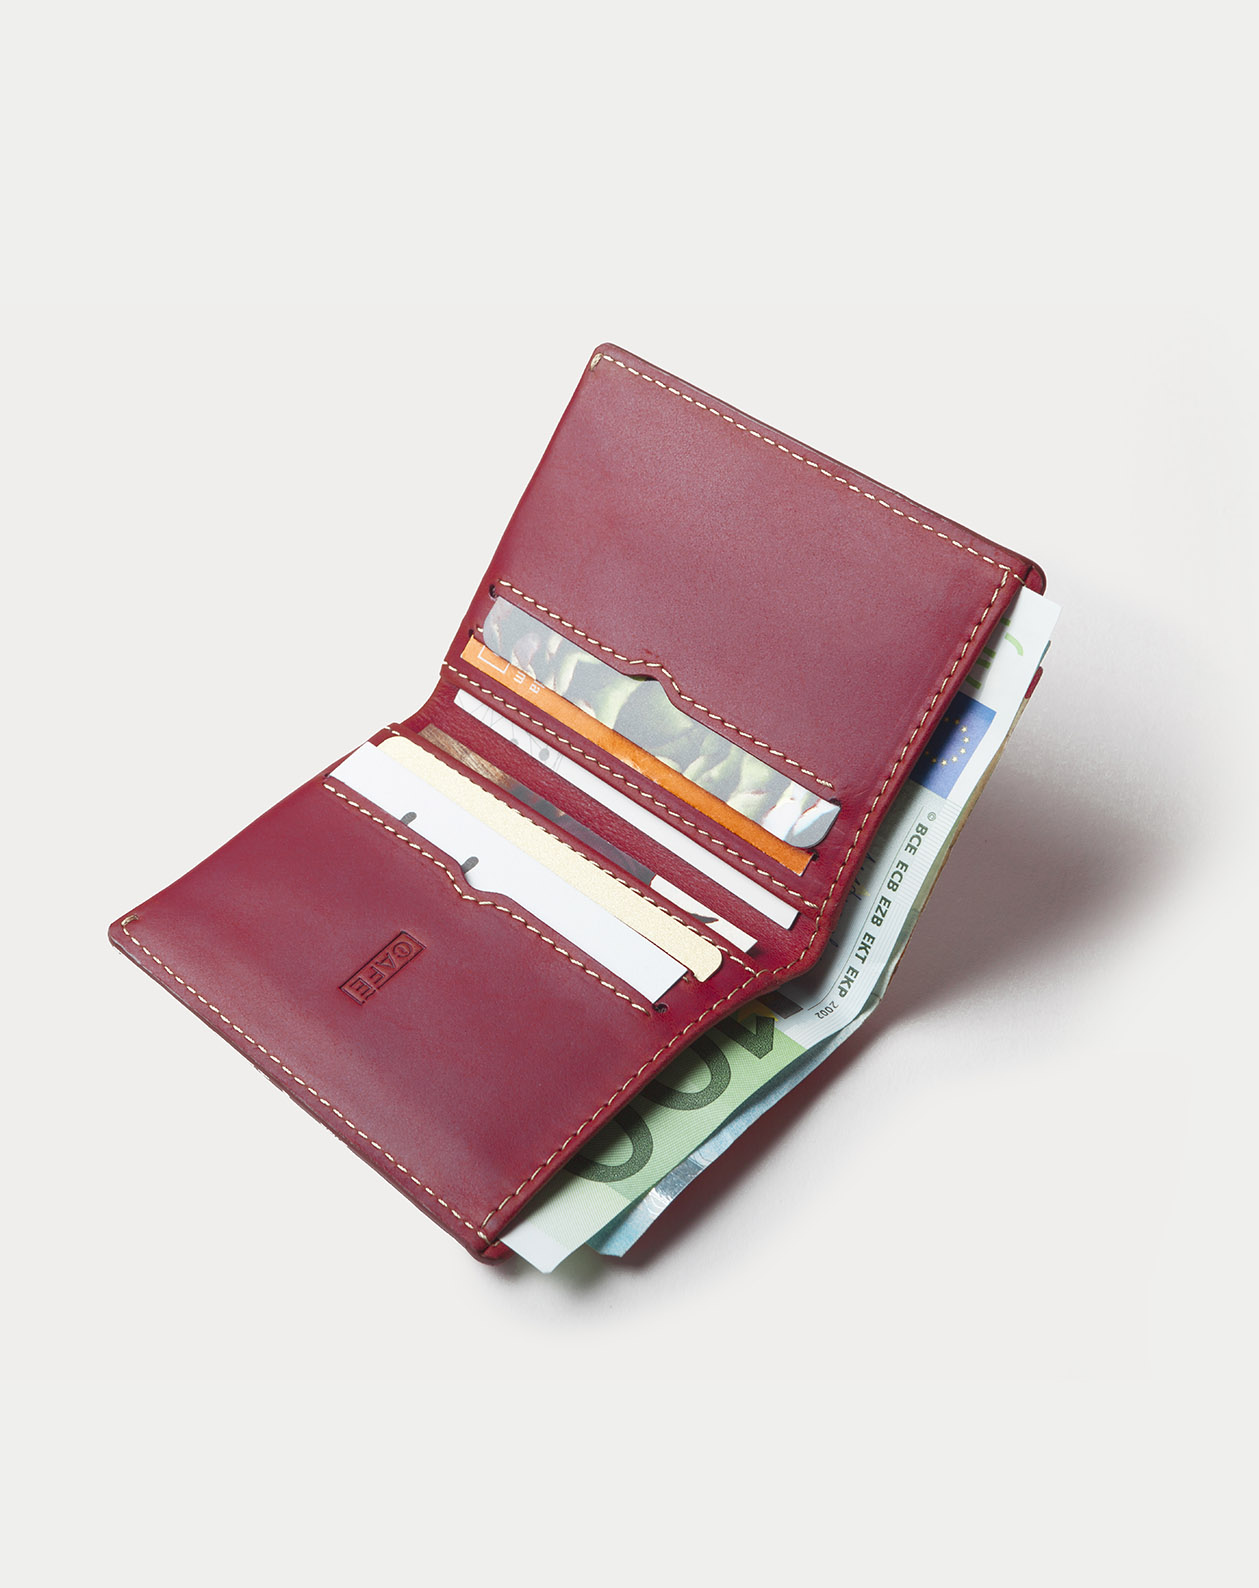 leather-slim-wallet-Costa-Rica-berry-3